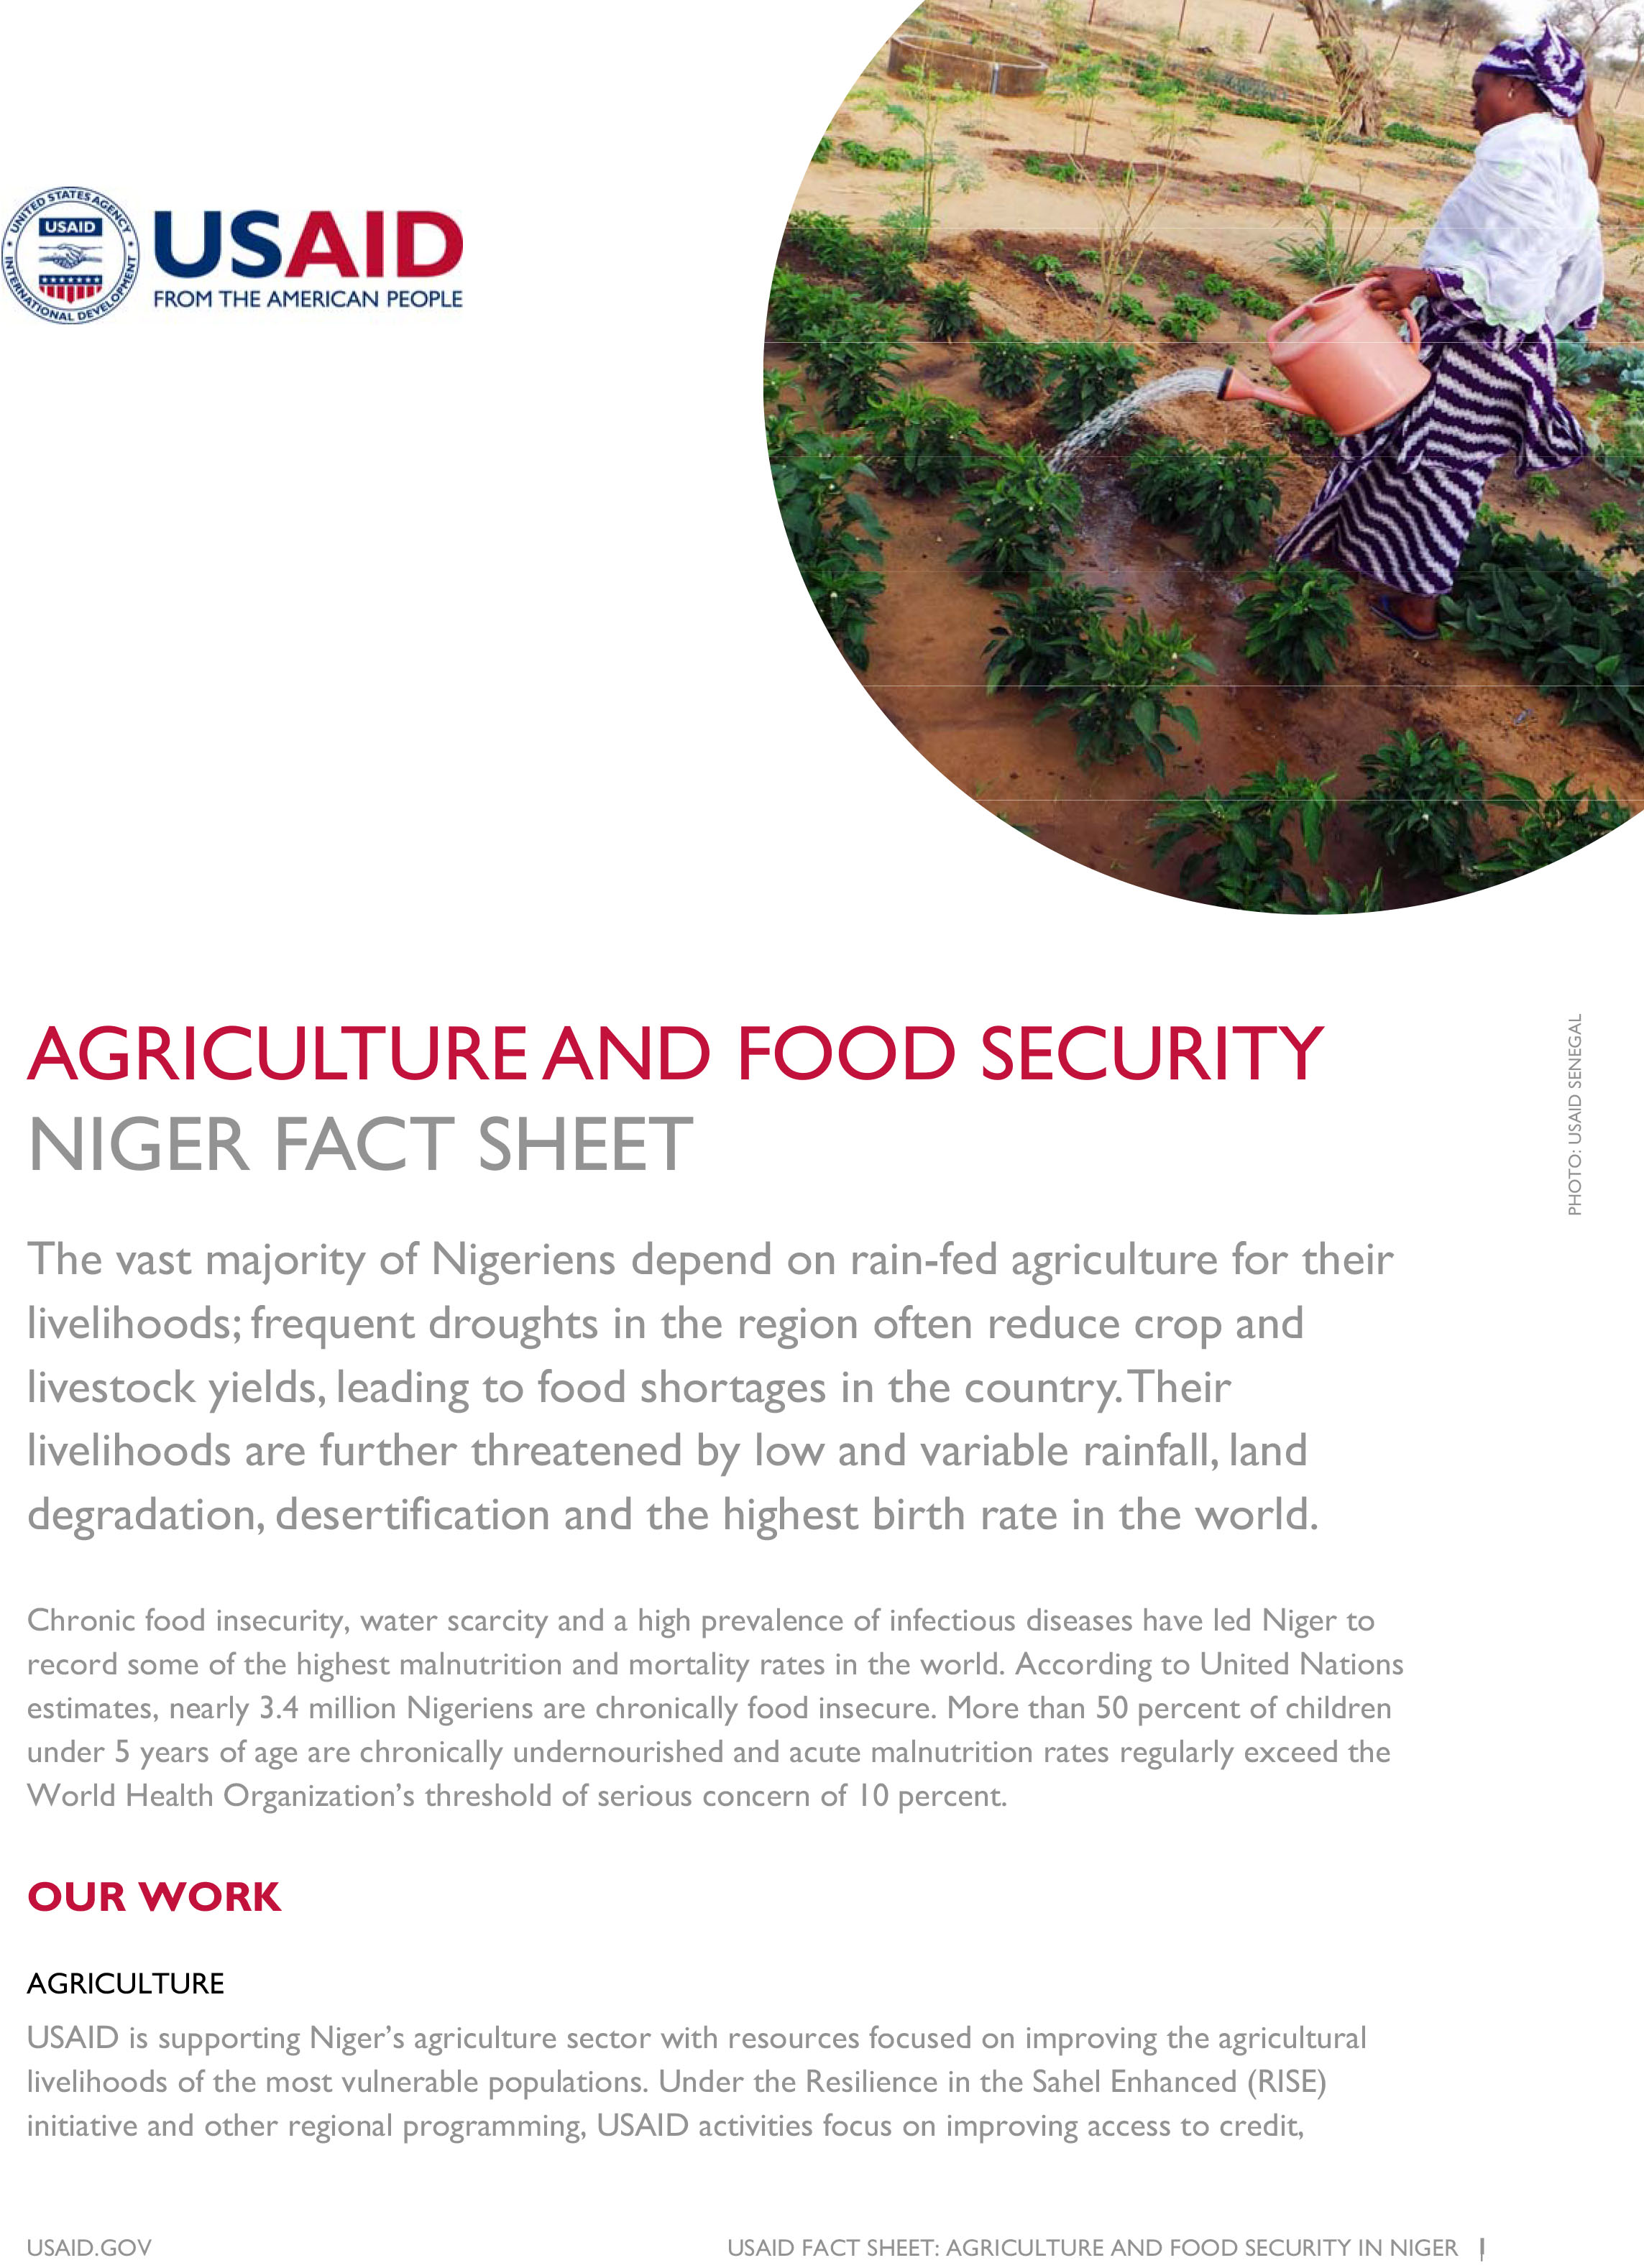 Niger Agriculture & Food Security Fact Sheet